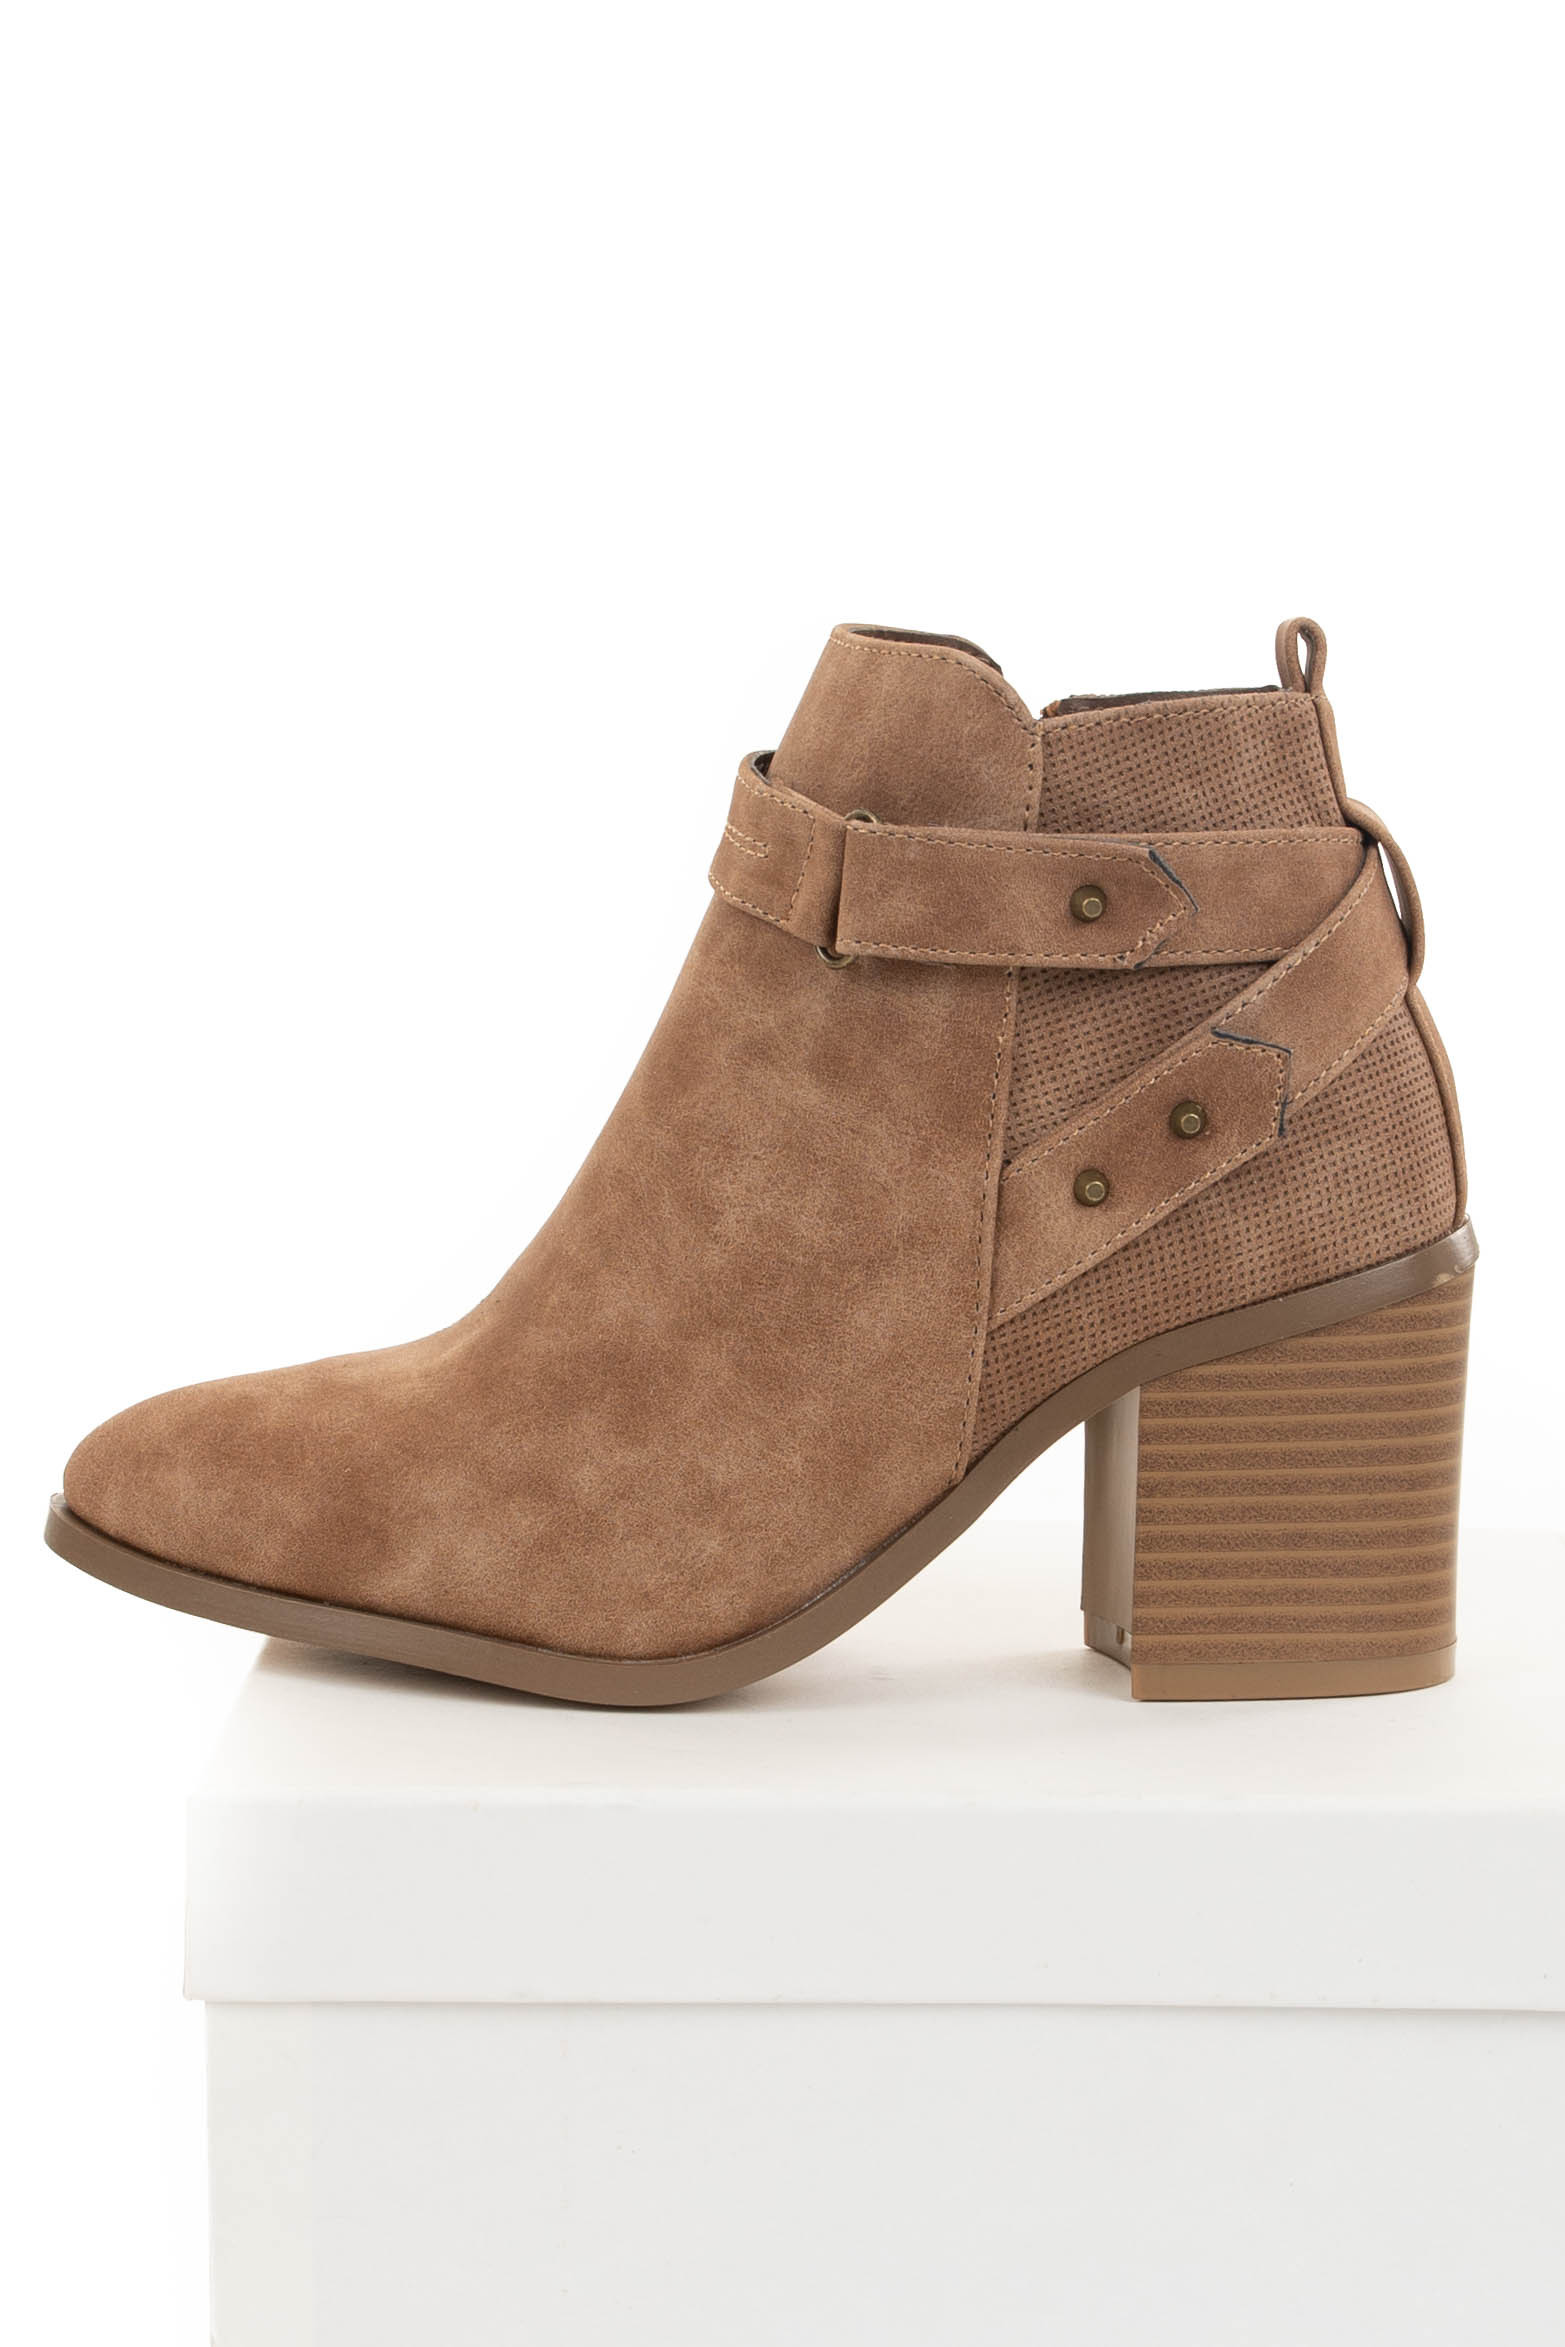 Dusty Toffee Heeled Bootie with Strap and Stud Details